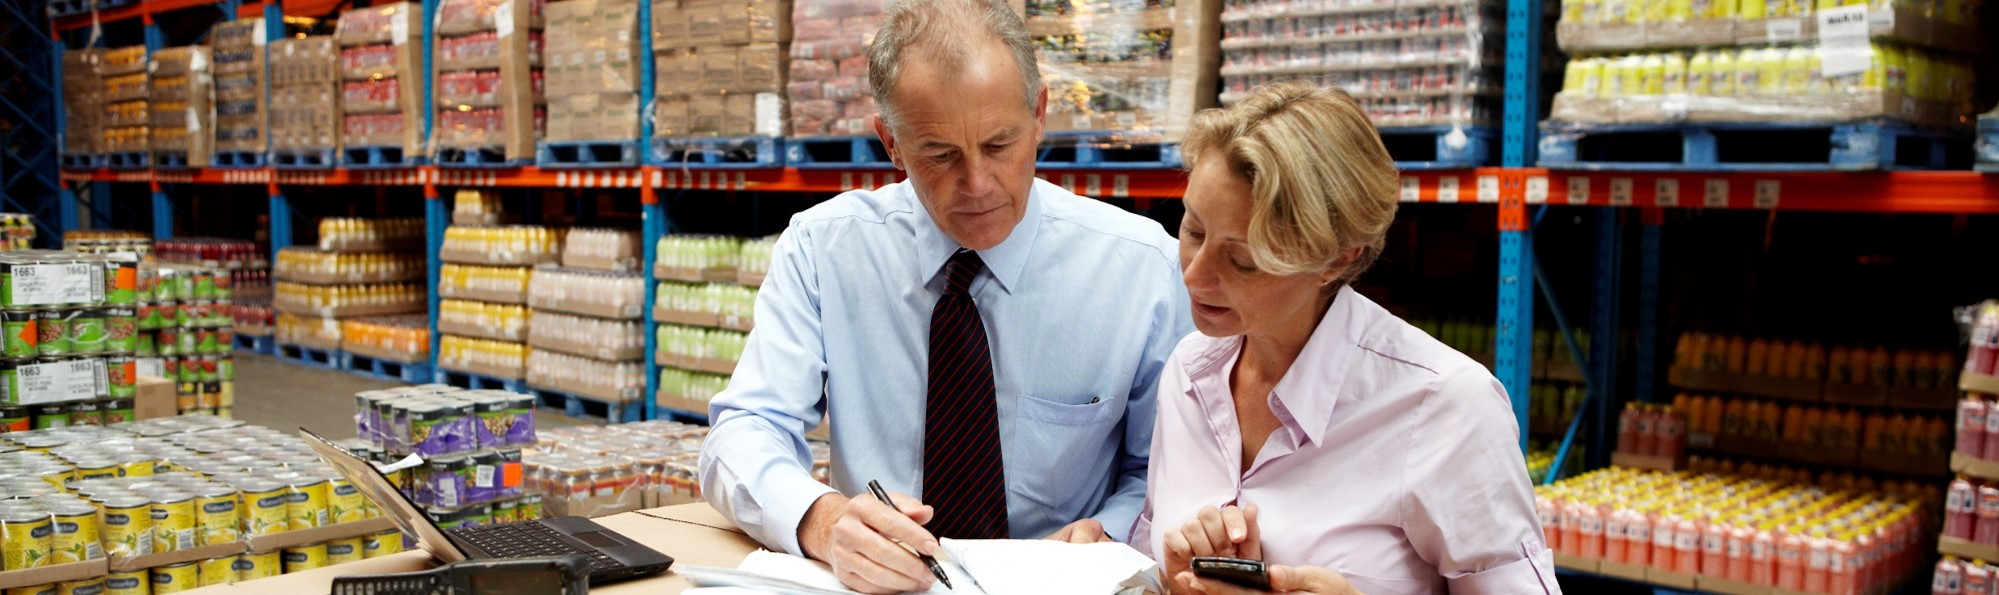 Professional man and woman discuss documents in warehouse